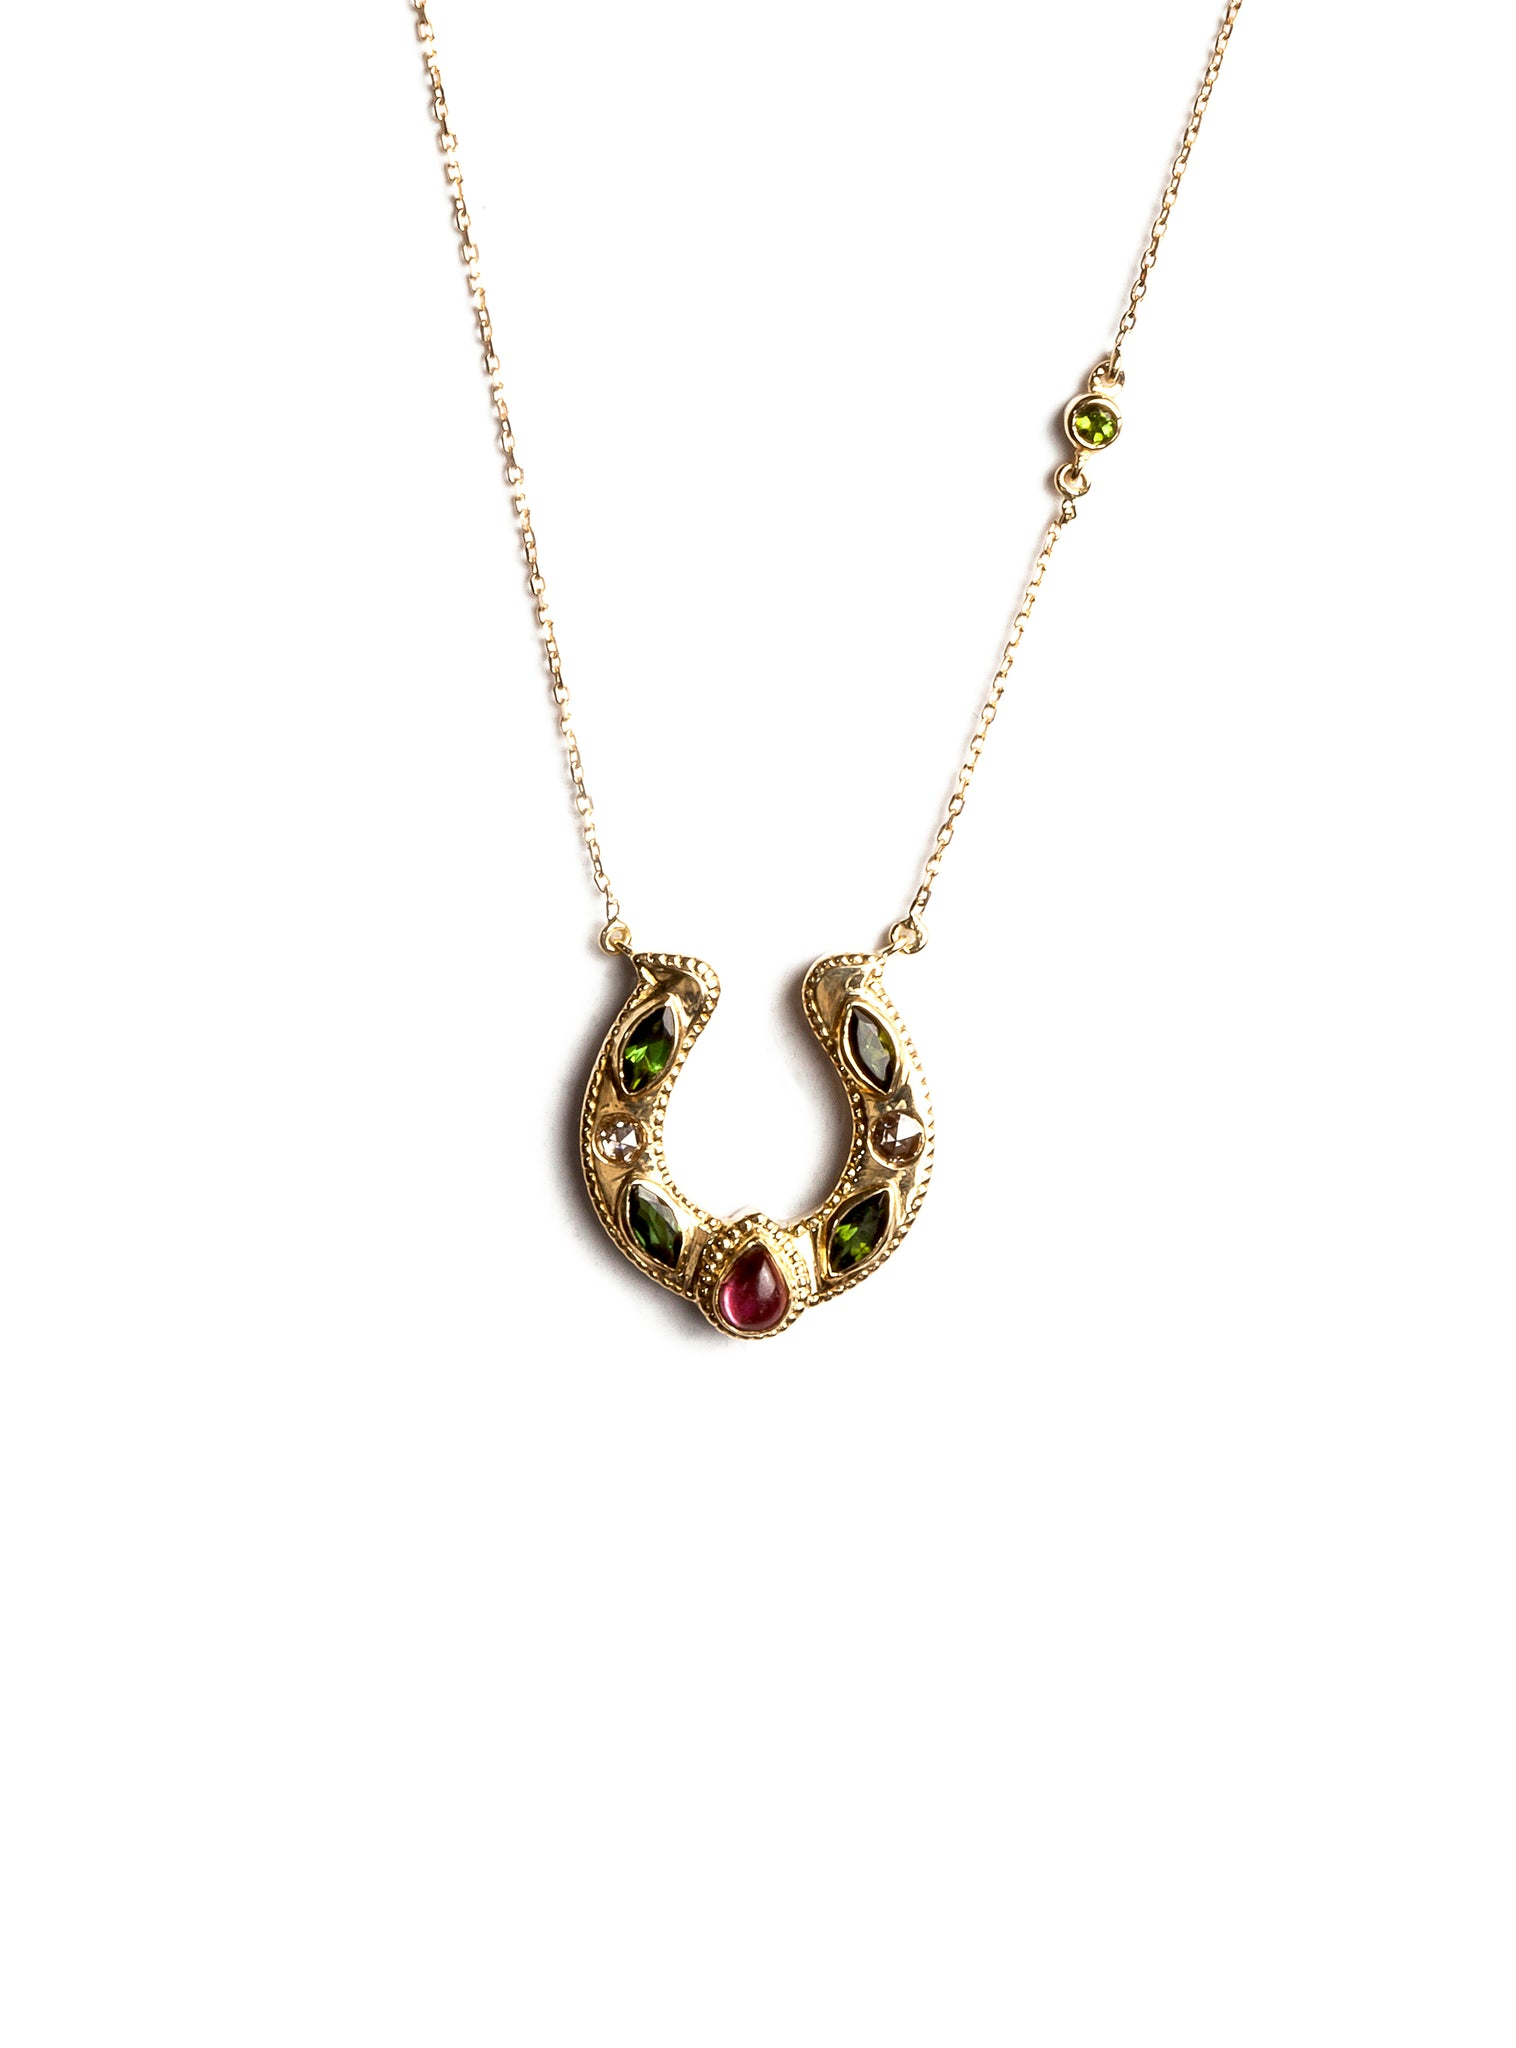 Horseshoe Necklace with Cabochon and Marquise Tourmalines and Diamonds